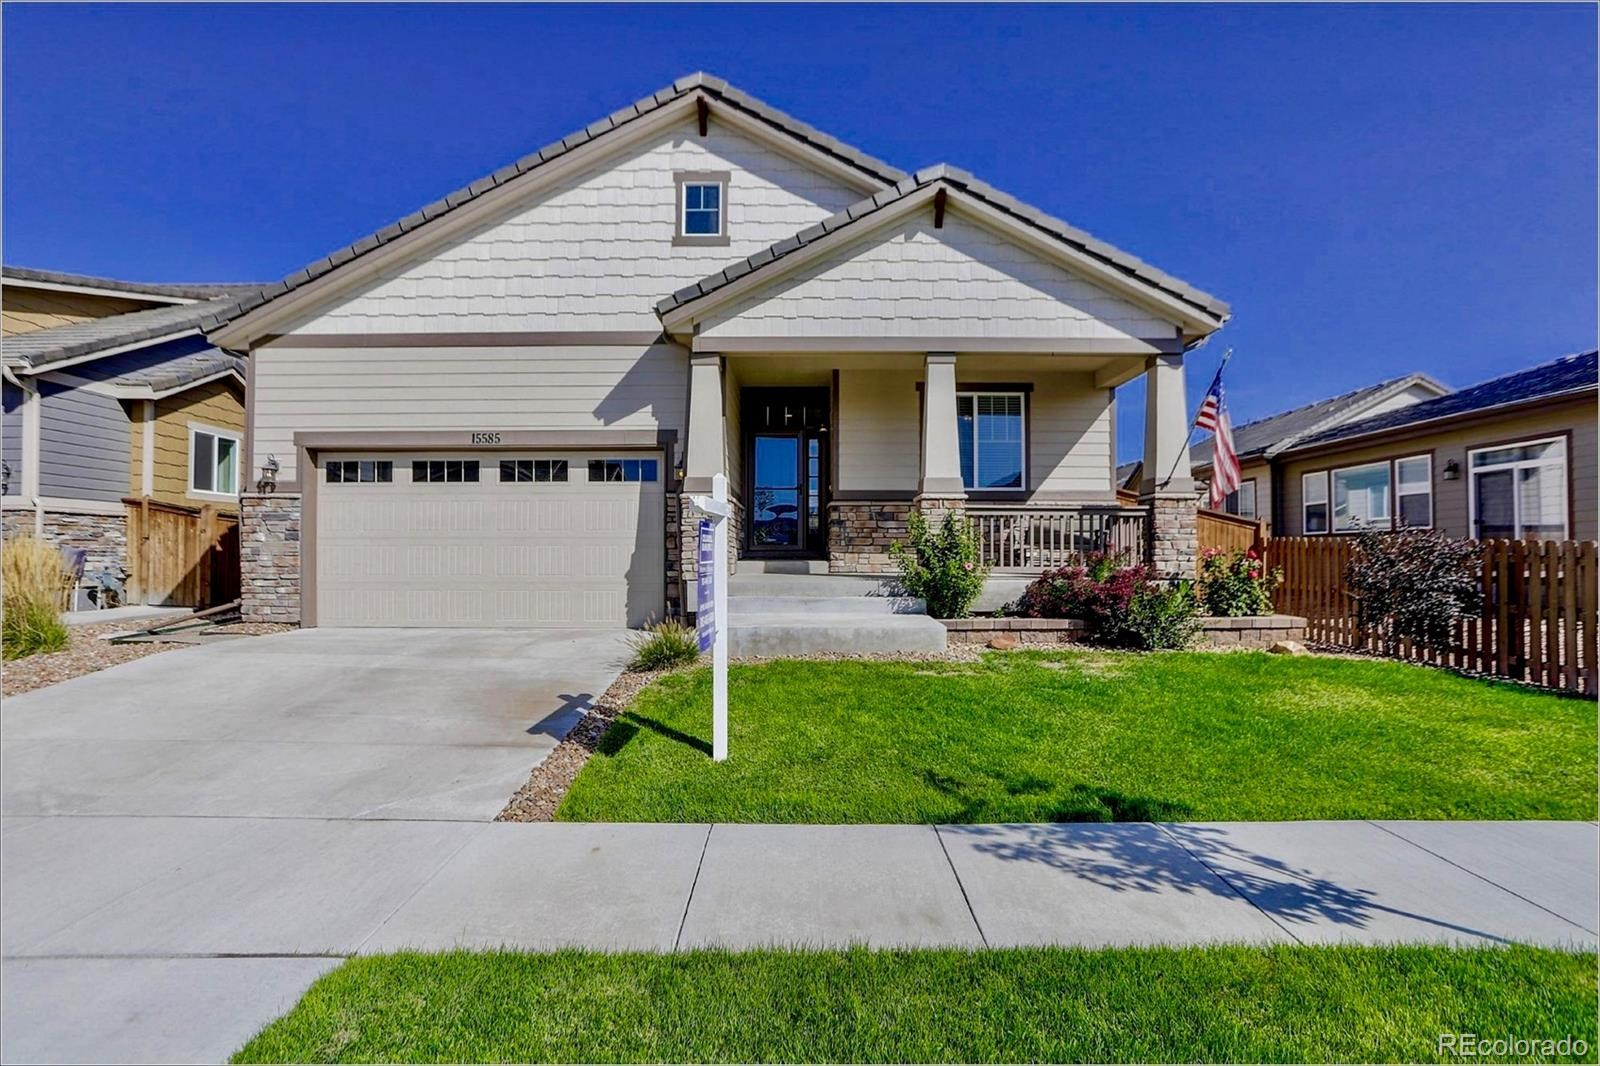 MLS# 9093556 - 2 - 15585 E 115th Avenue, Commerce City, CO 80022